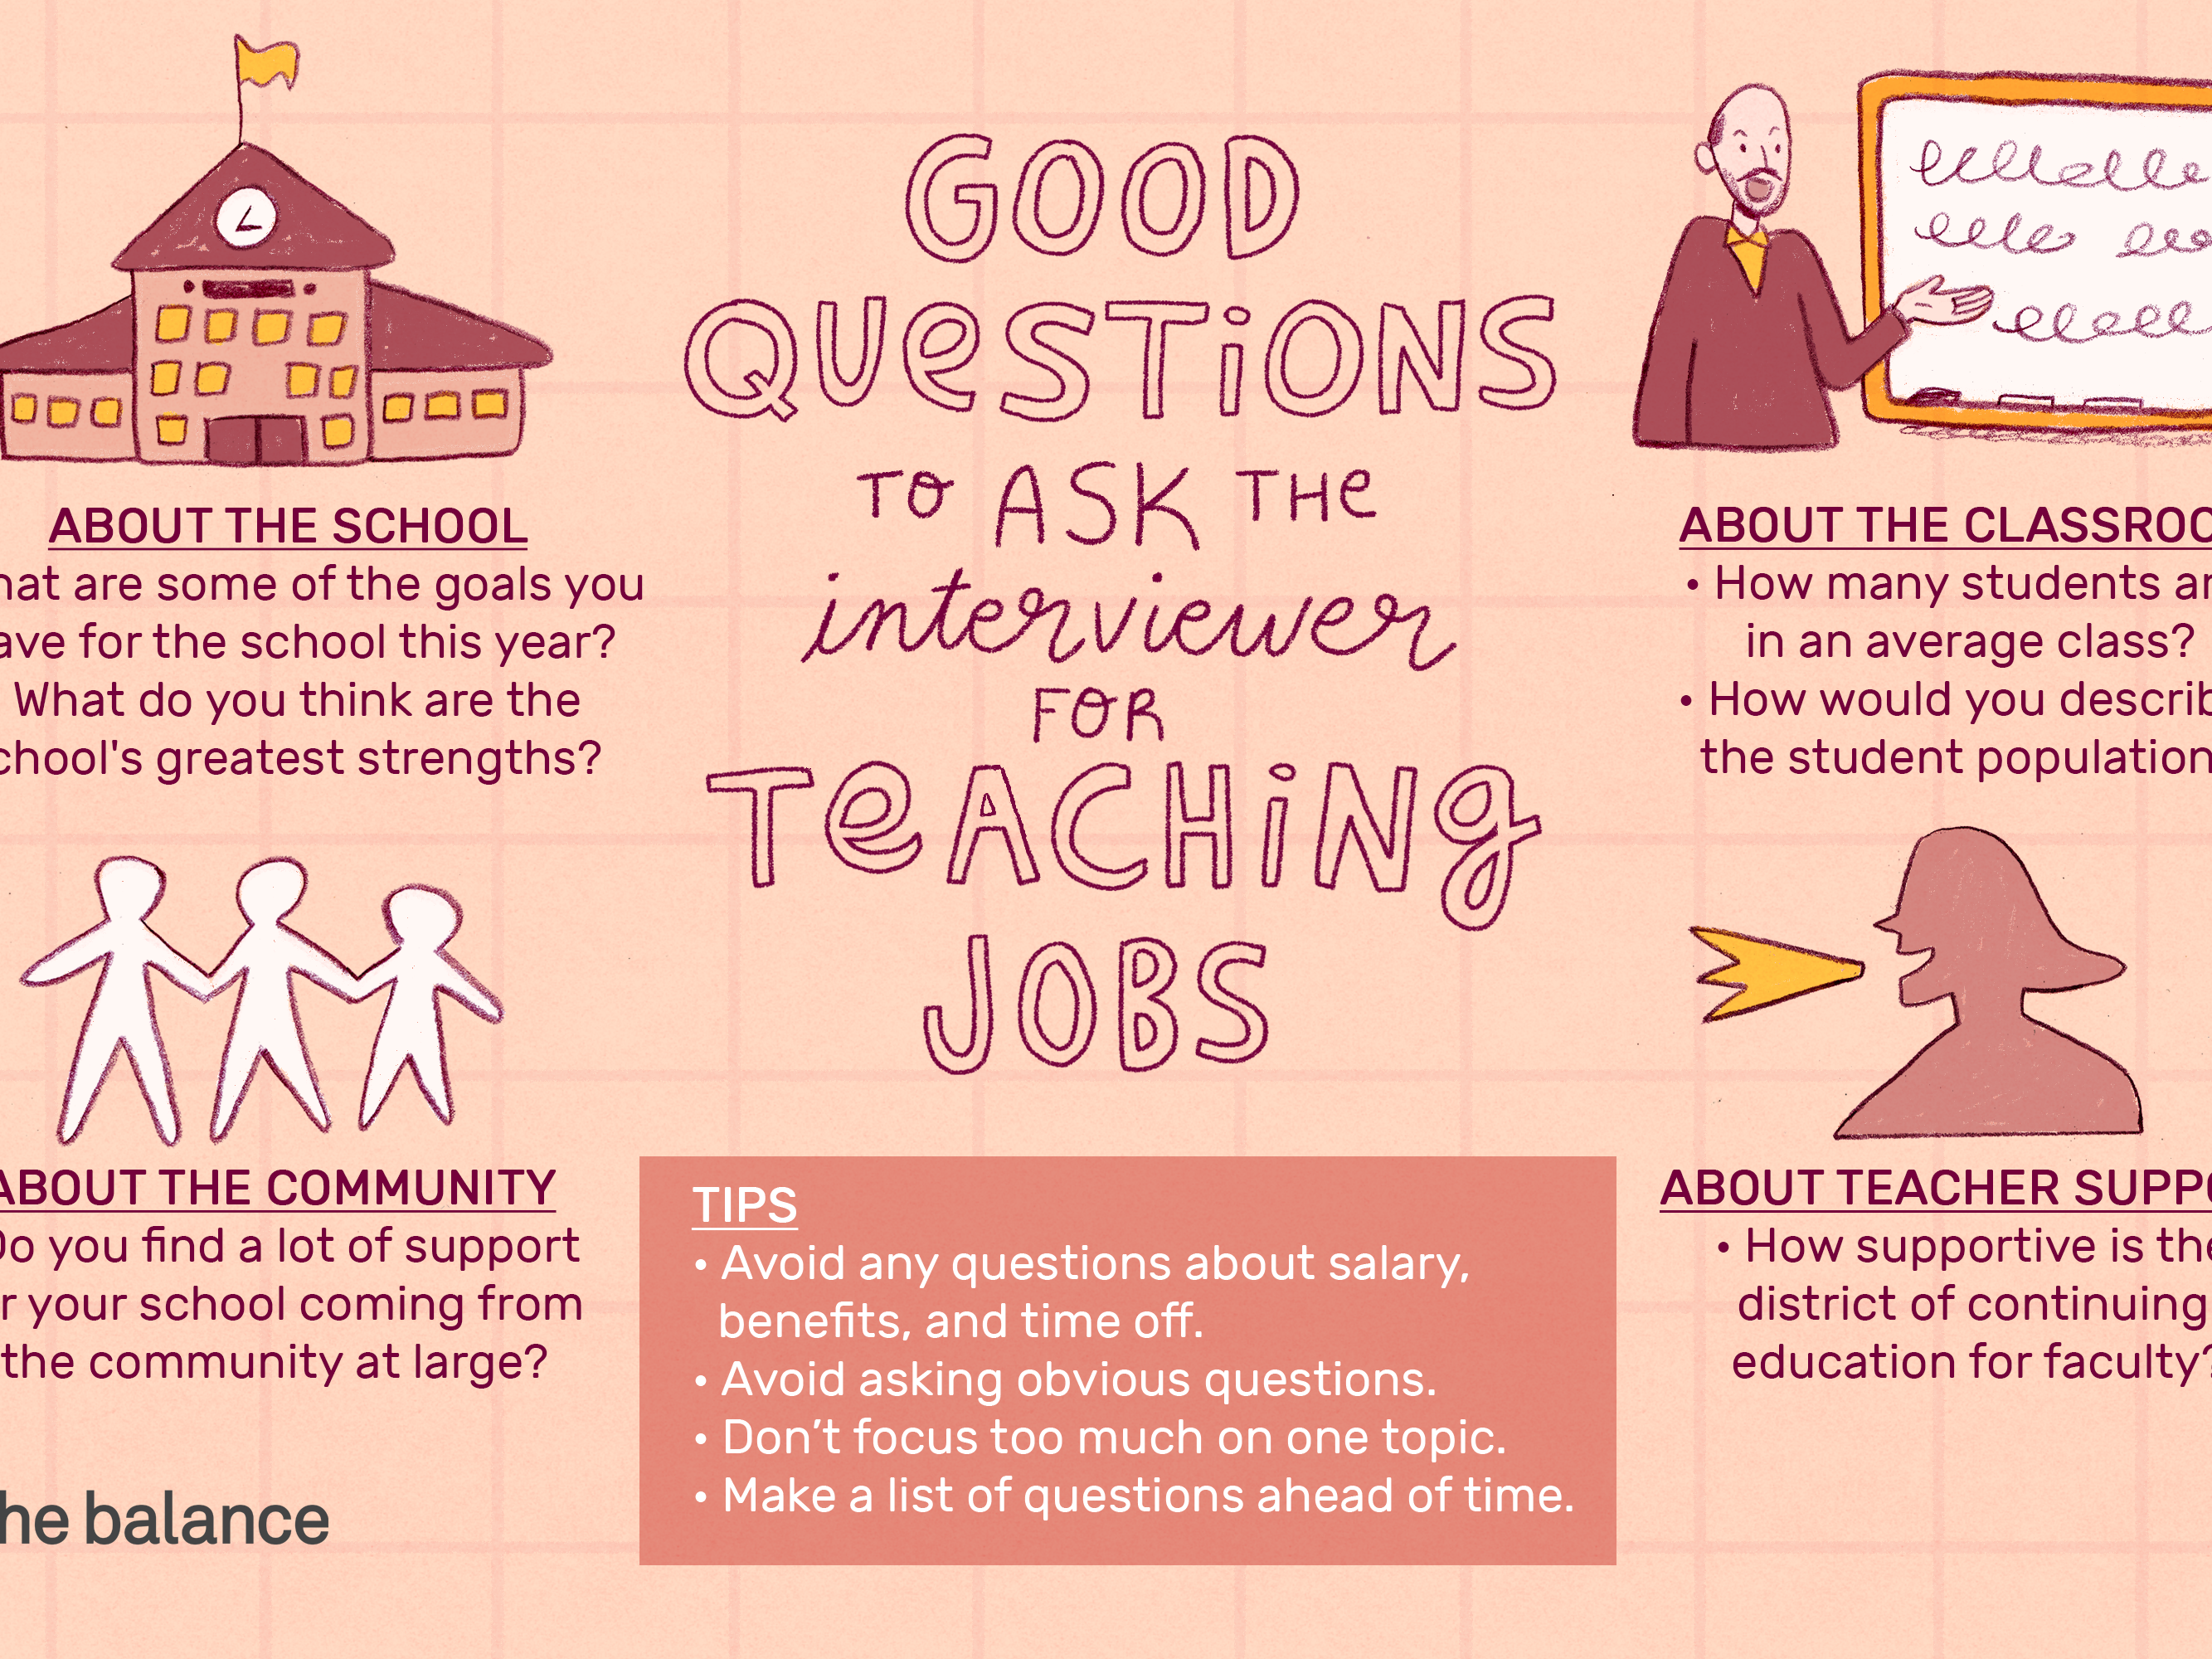 good interview questions to ask interviewee